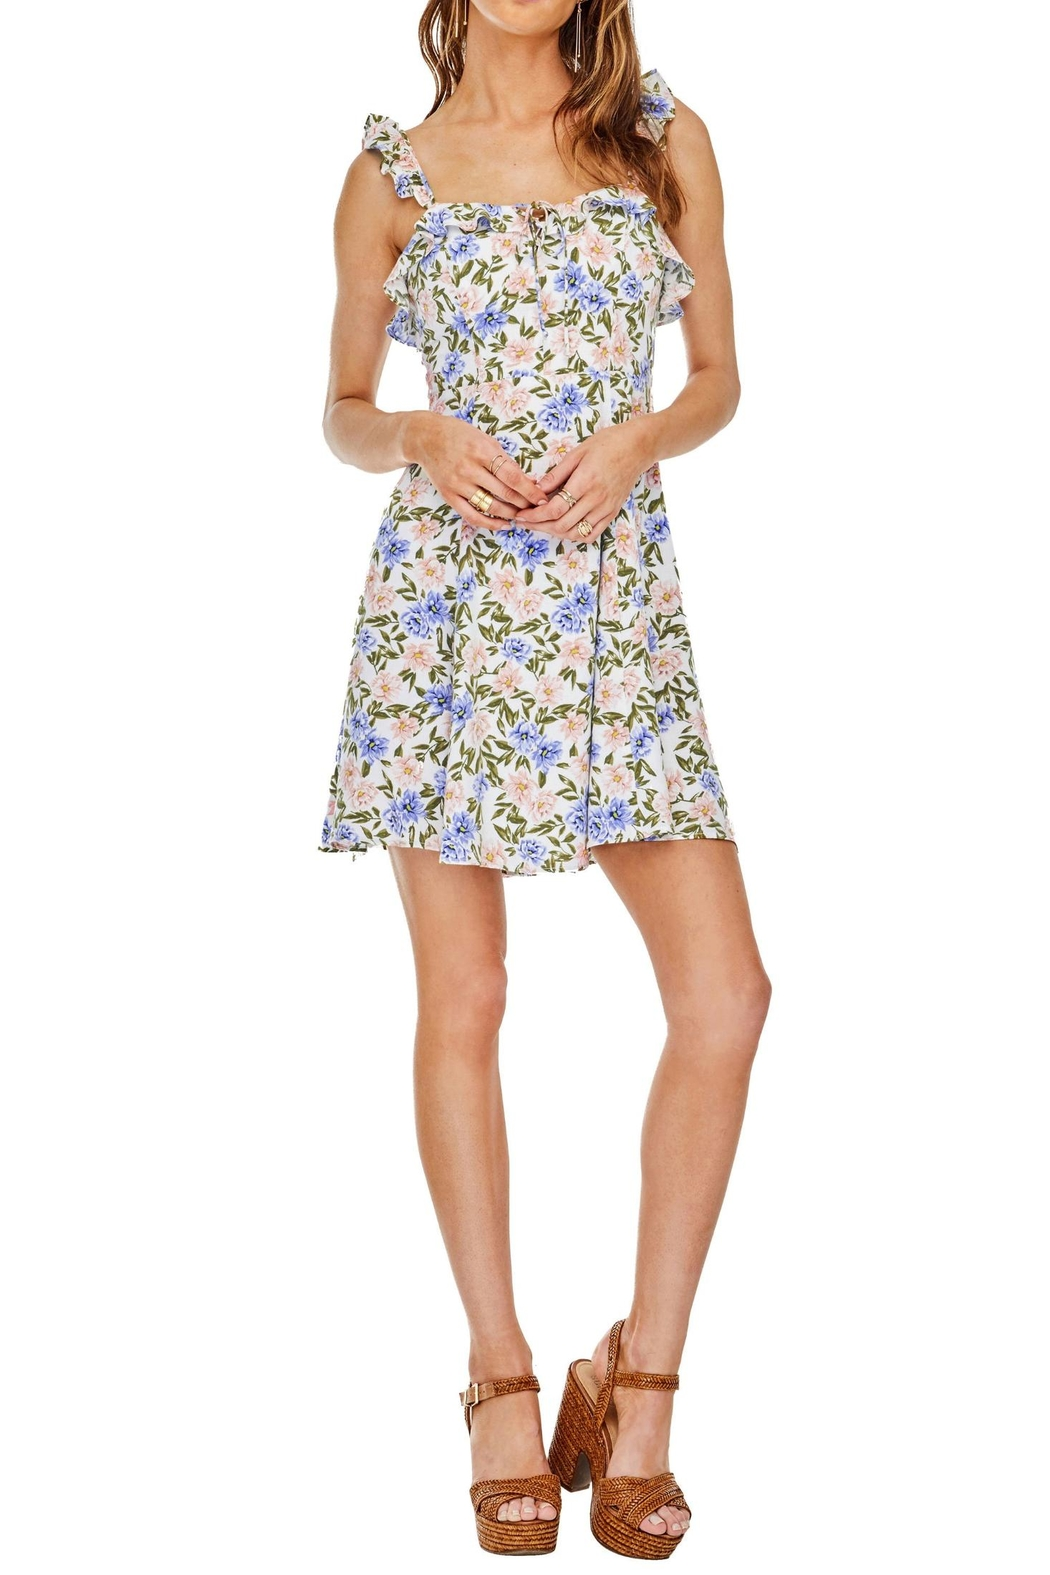 ASTR Floral Hannah Dress - Main Image